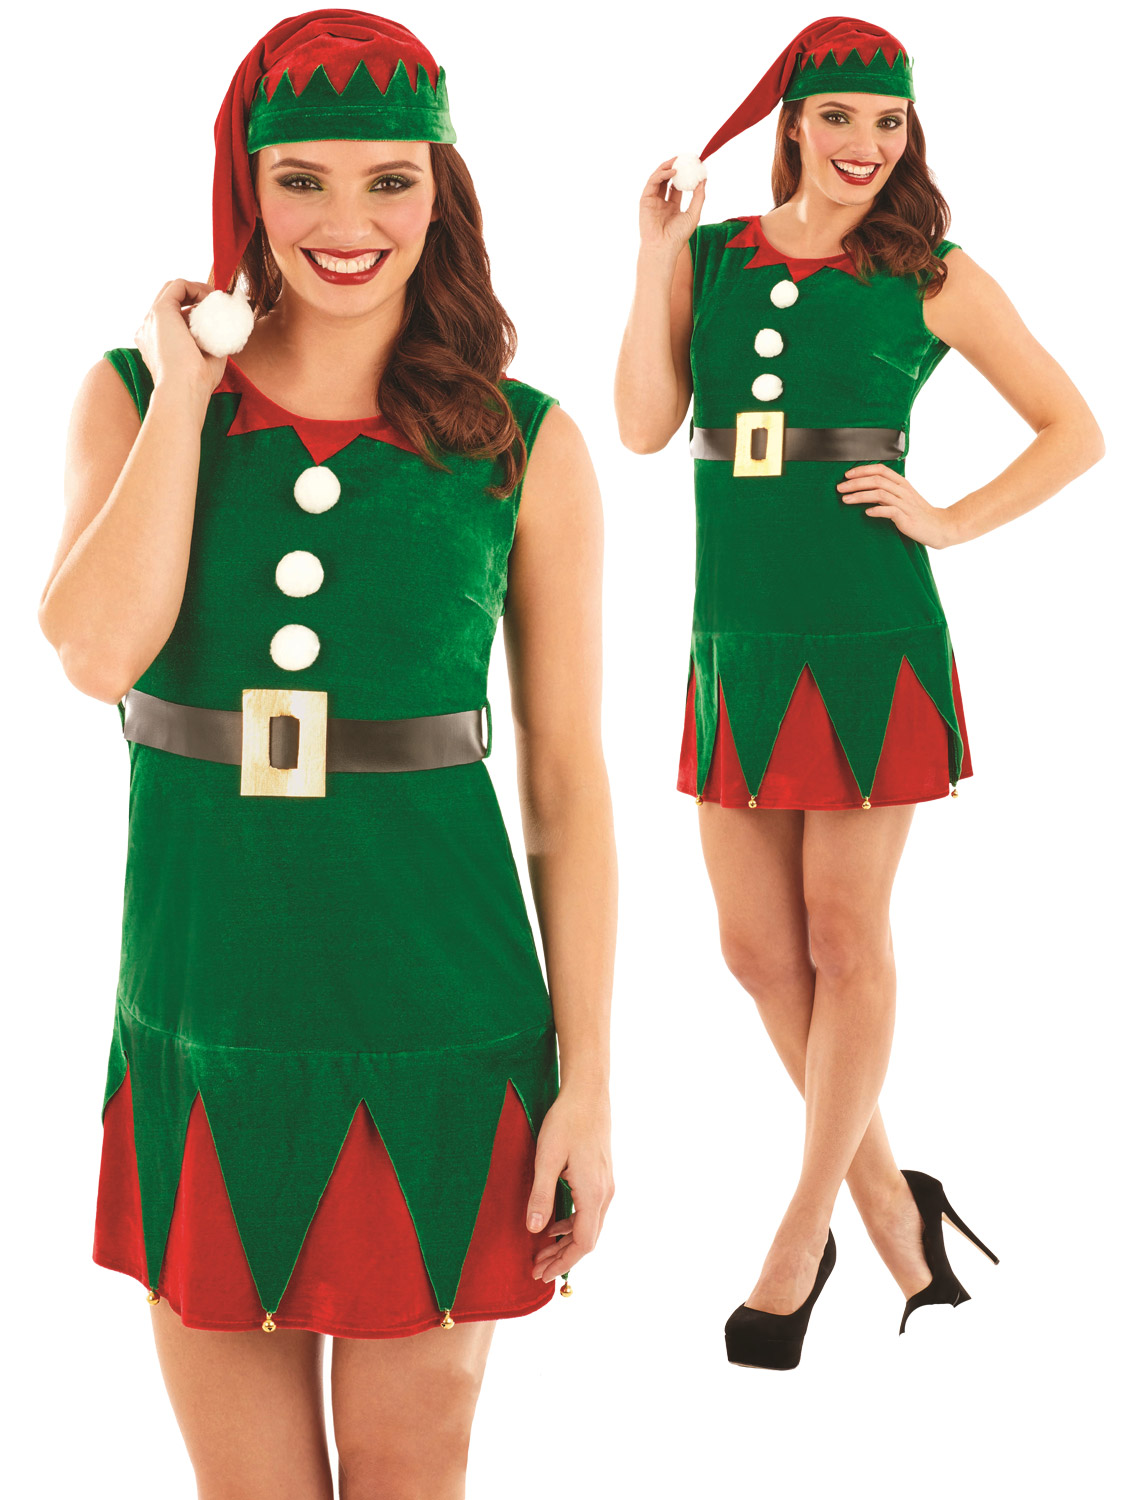 Ladies miss elf costume adults christmas fancy dress womens santas transform yourself into one of santas helpers with this ladies elf costume perfect for a christmas night out solutioingenieria Choice Image